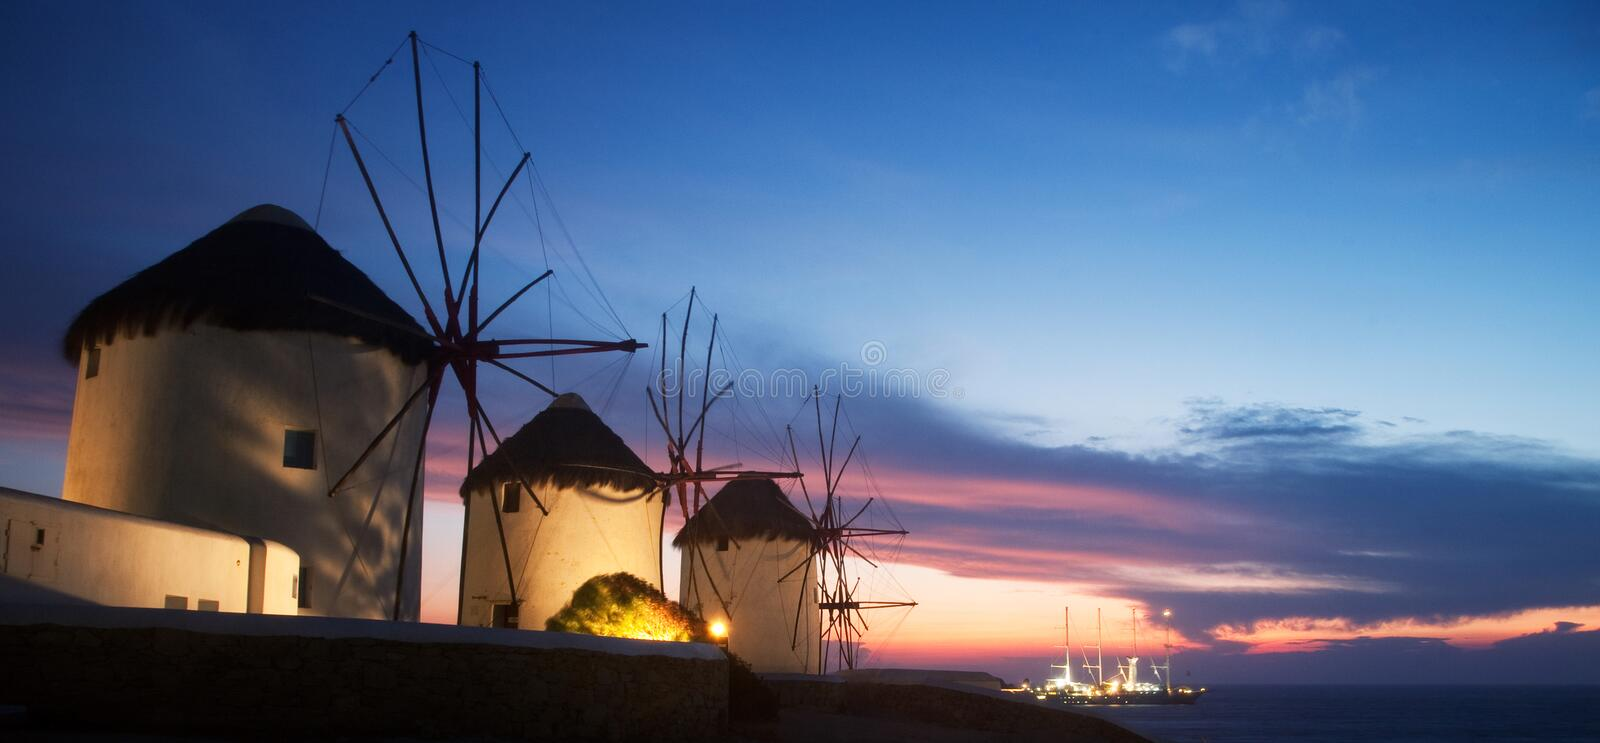 Windmills on the island of Mykonos (Greece) royalty free stock photo